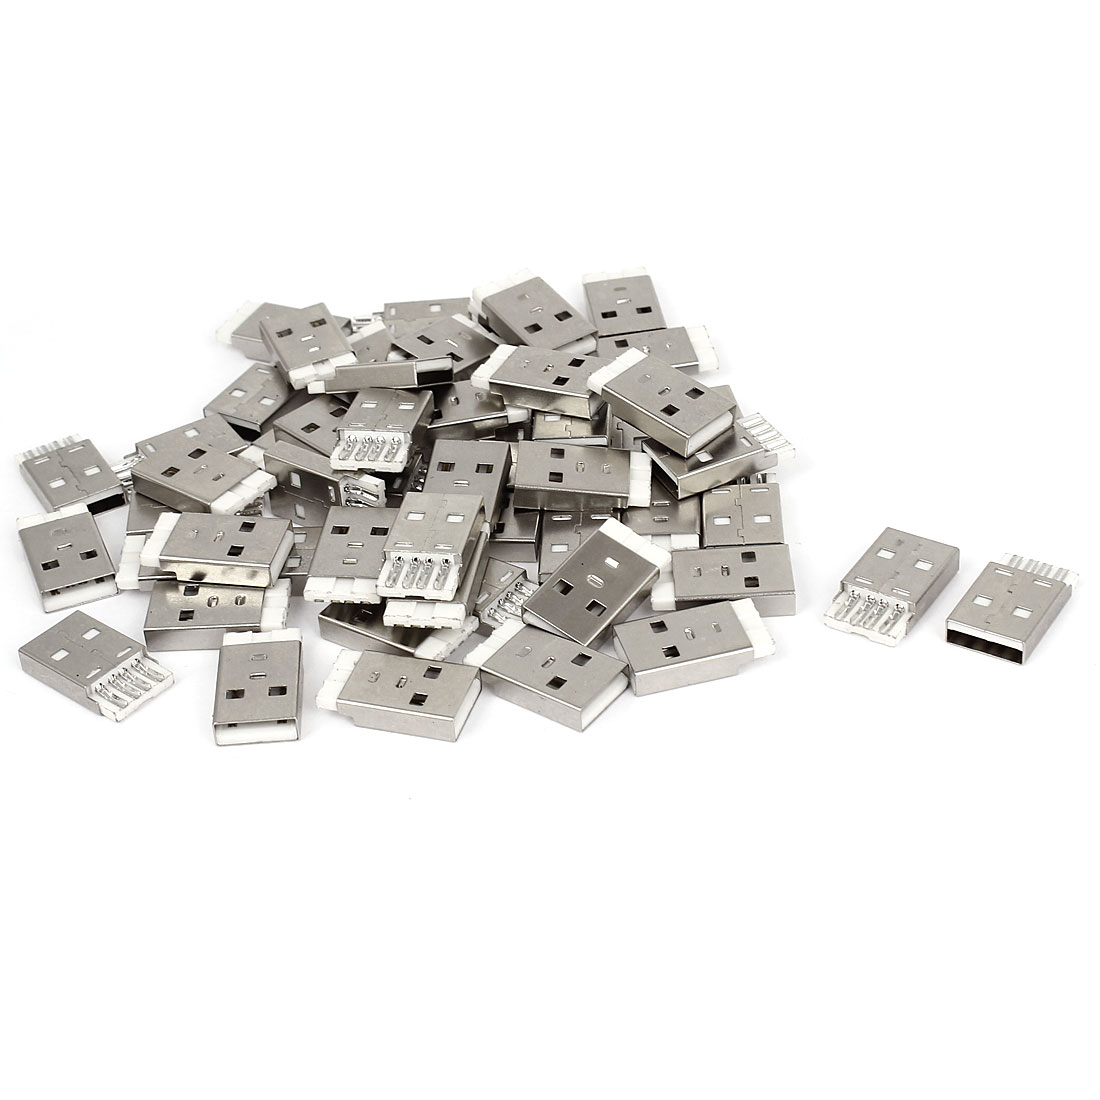 55 Pcs USB 2.0 Type-A Jack 4-pin Male Socket Adapter Connector